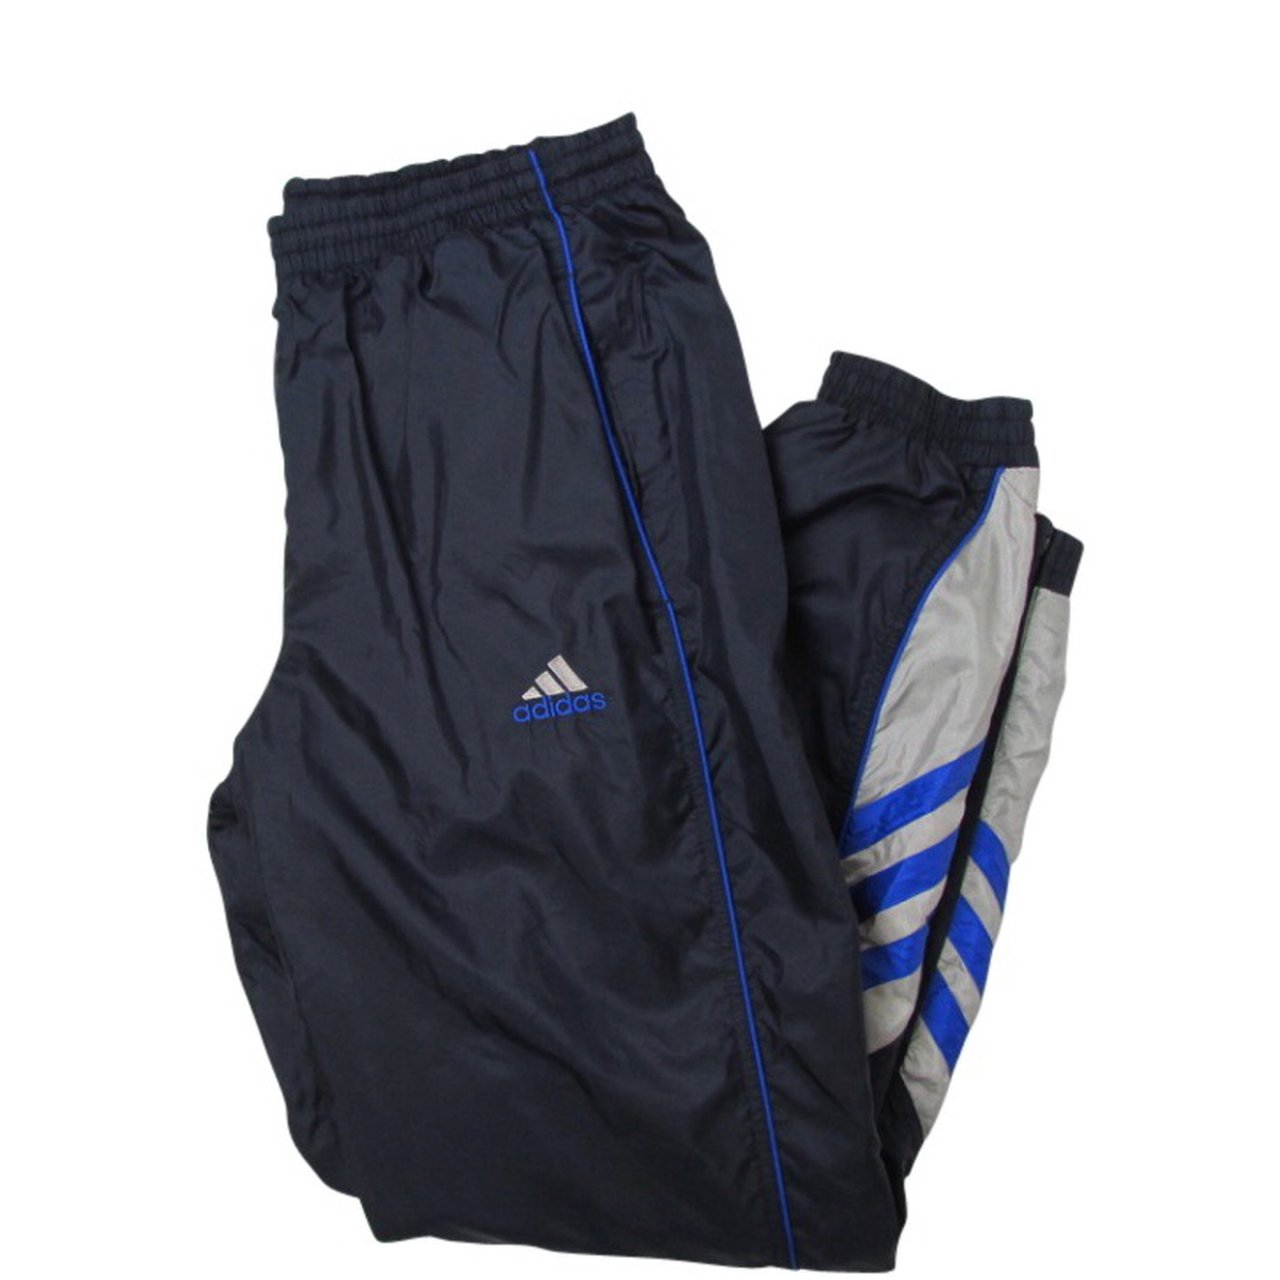 047f2598c938 Adidas Joggers in Navy Blue Vintage Adidas Striped Size - Depop